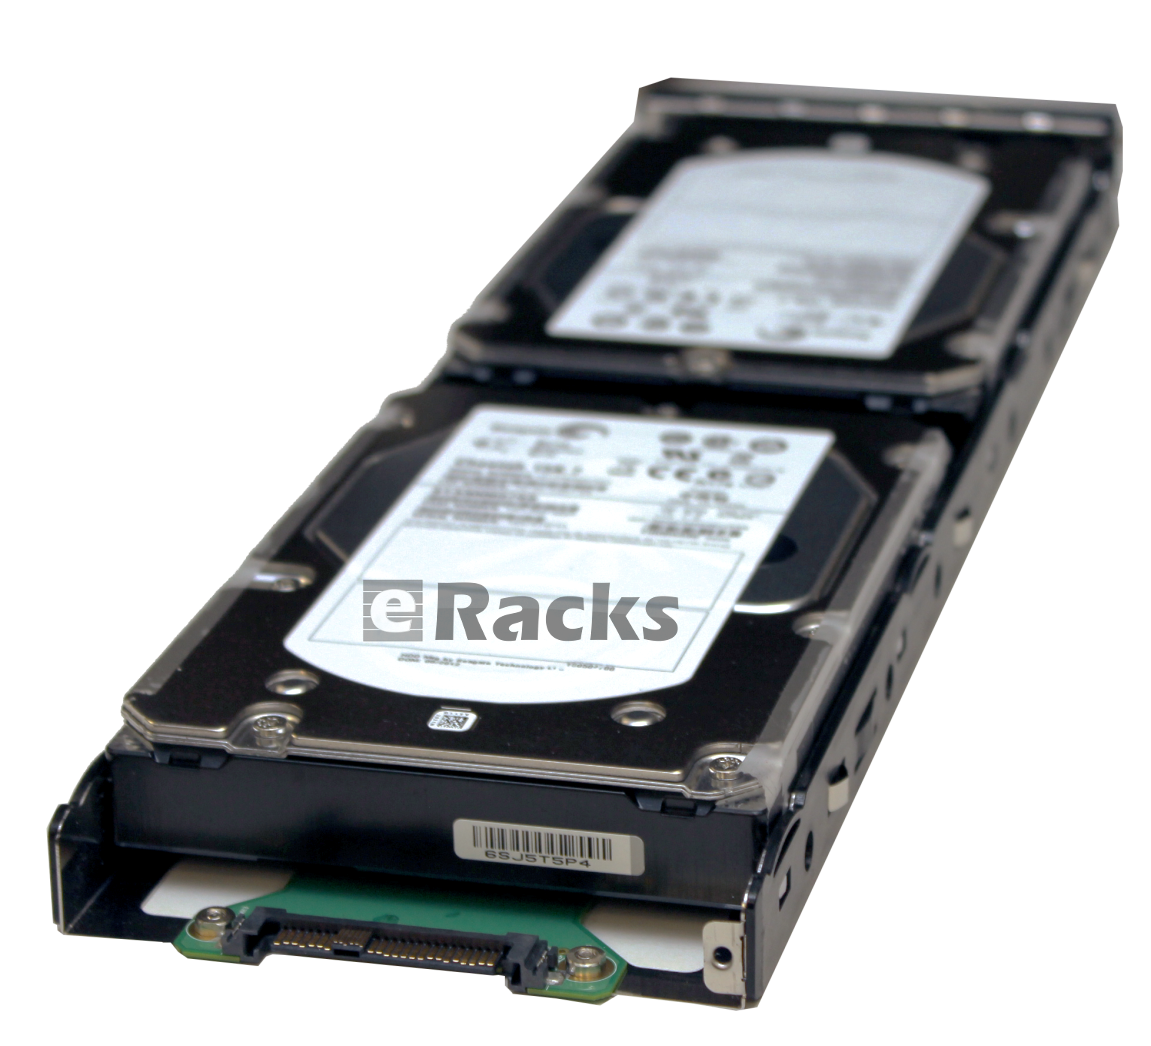 eRacks/NAS72 nas72-drive-tray-with-2-drives-angle_logo.png